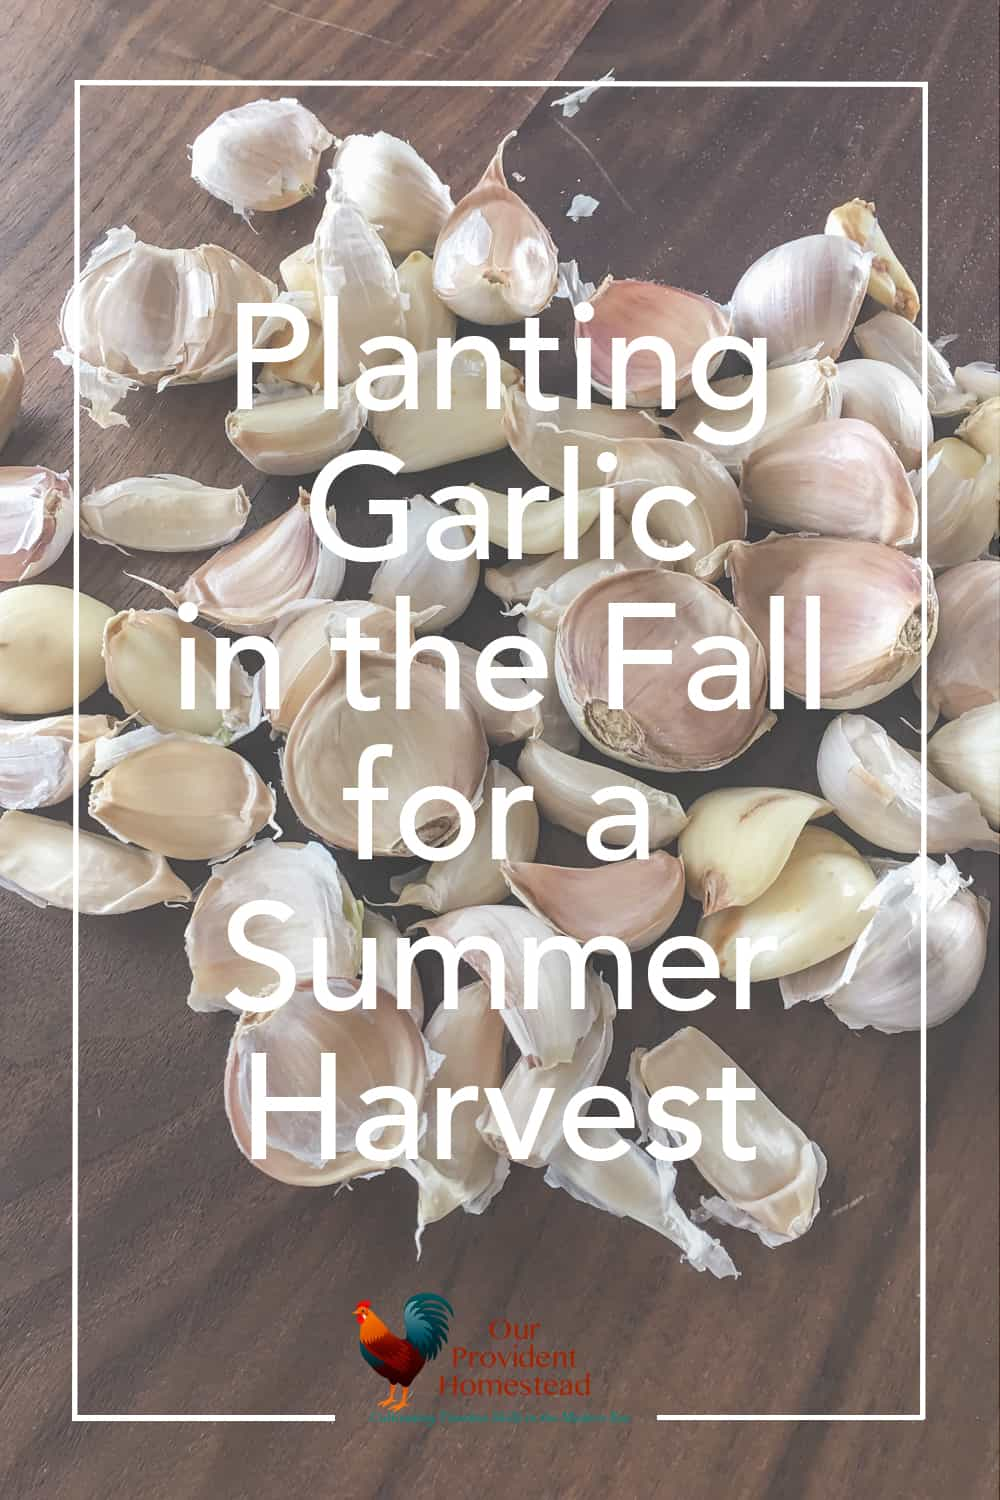 Do you grow your own garlic? Garlic is an easy and low maintenance plant that you can grow on your homestead in the fall for a great summer harvest. #growinggarlic #plantinggarlic #gardening